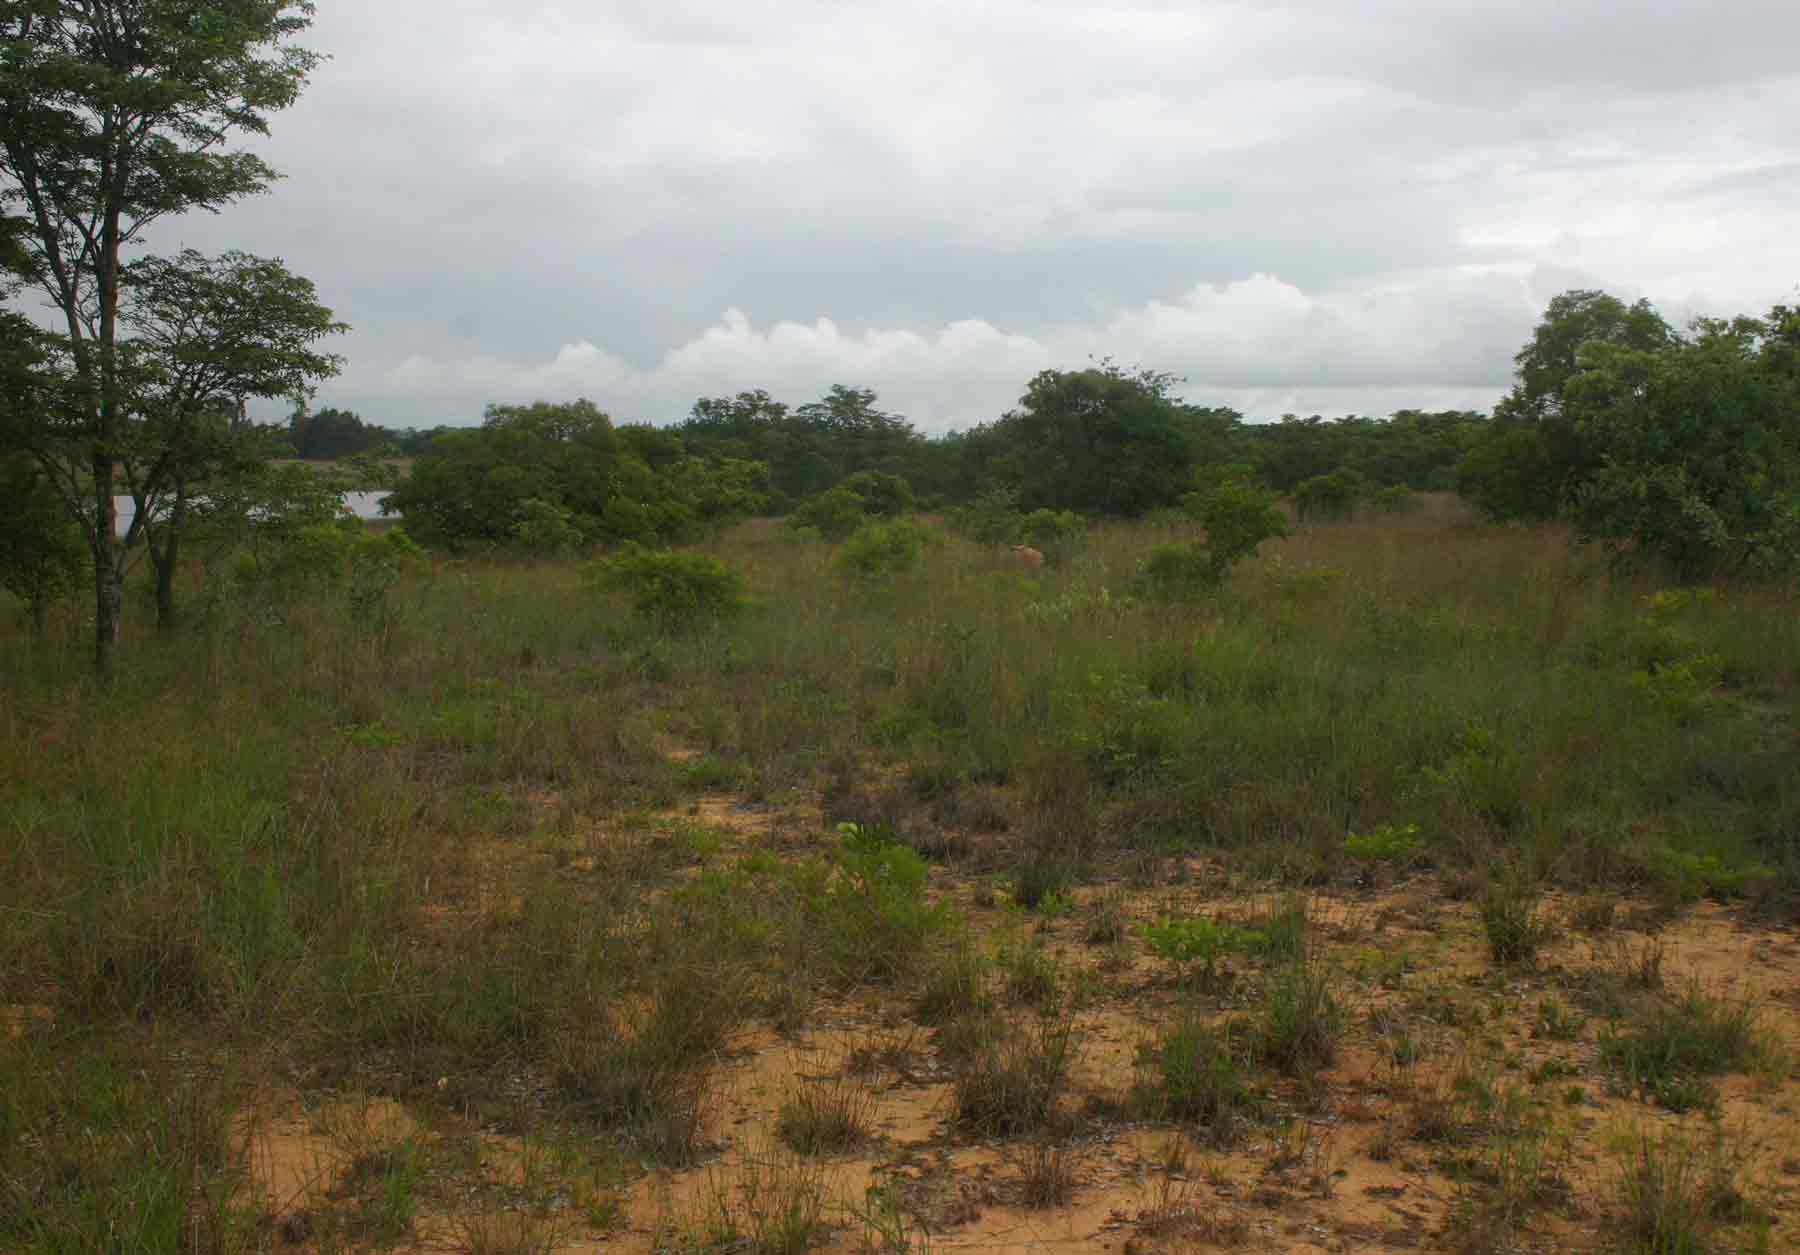 Open area, partly poor sandy soils and partly grassy vleis